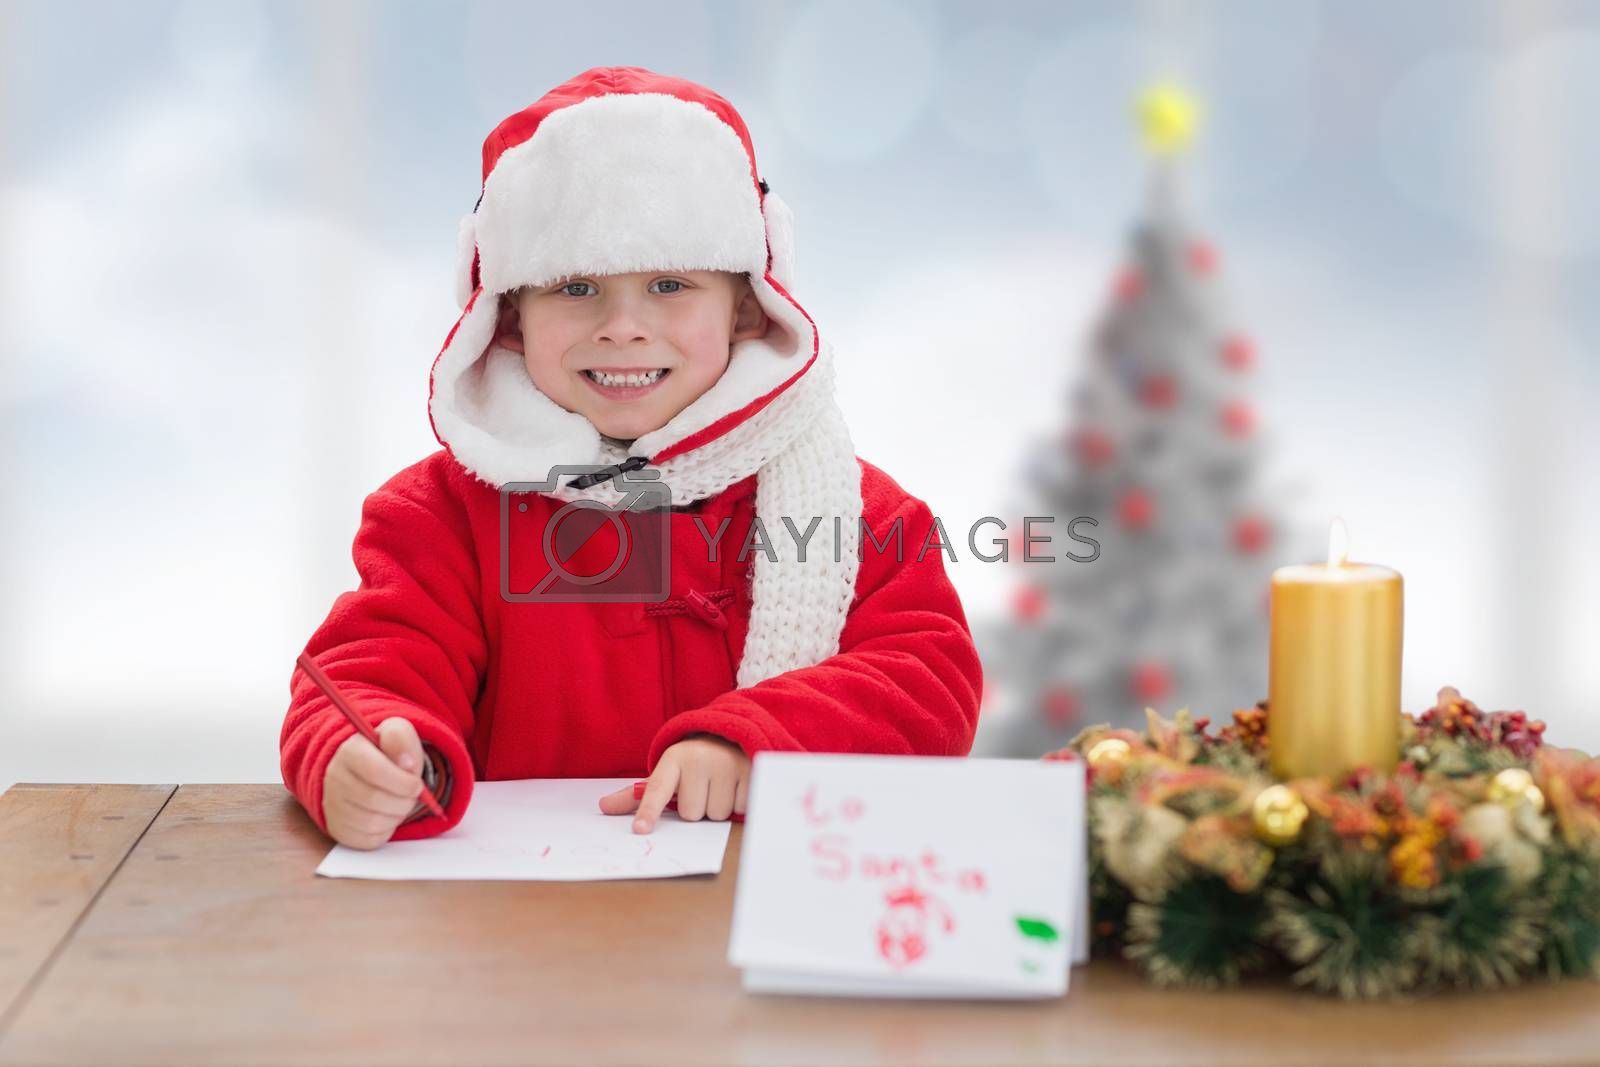 Cute boy drawing festive pictures  against blurry christmas tree in room